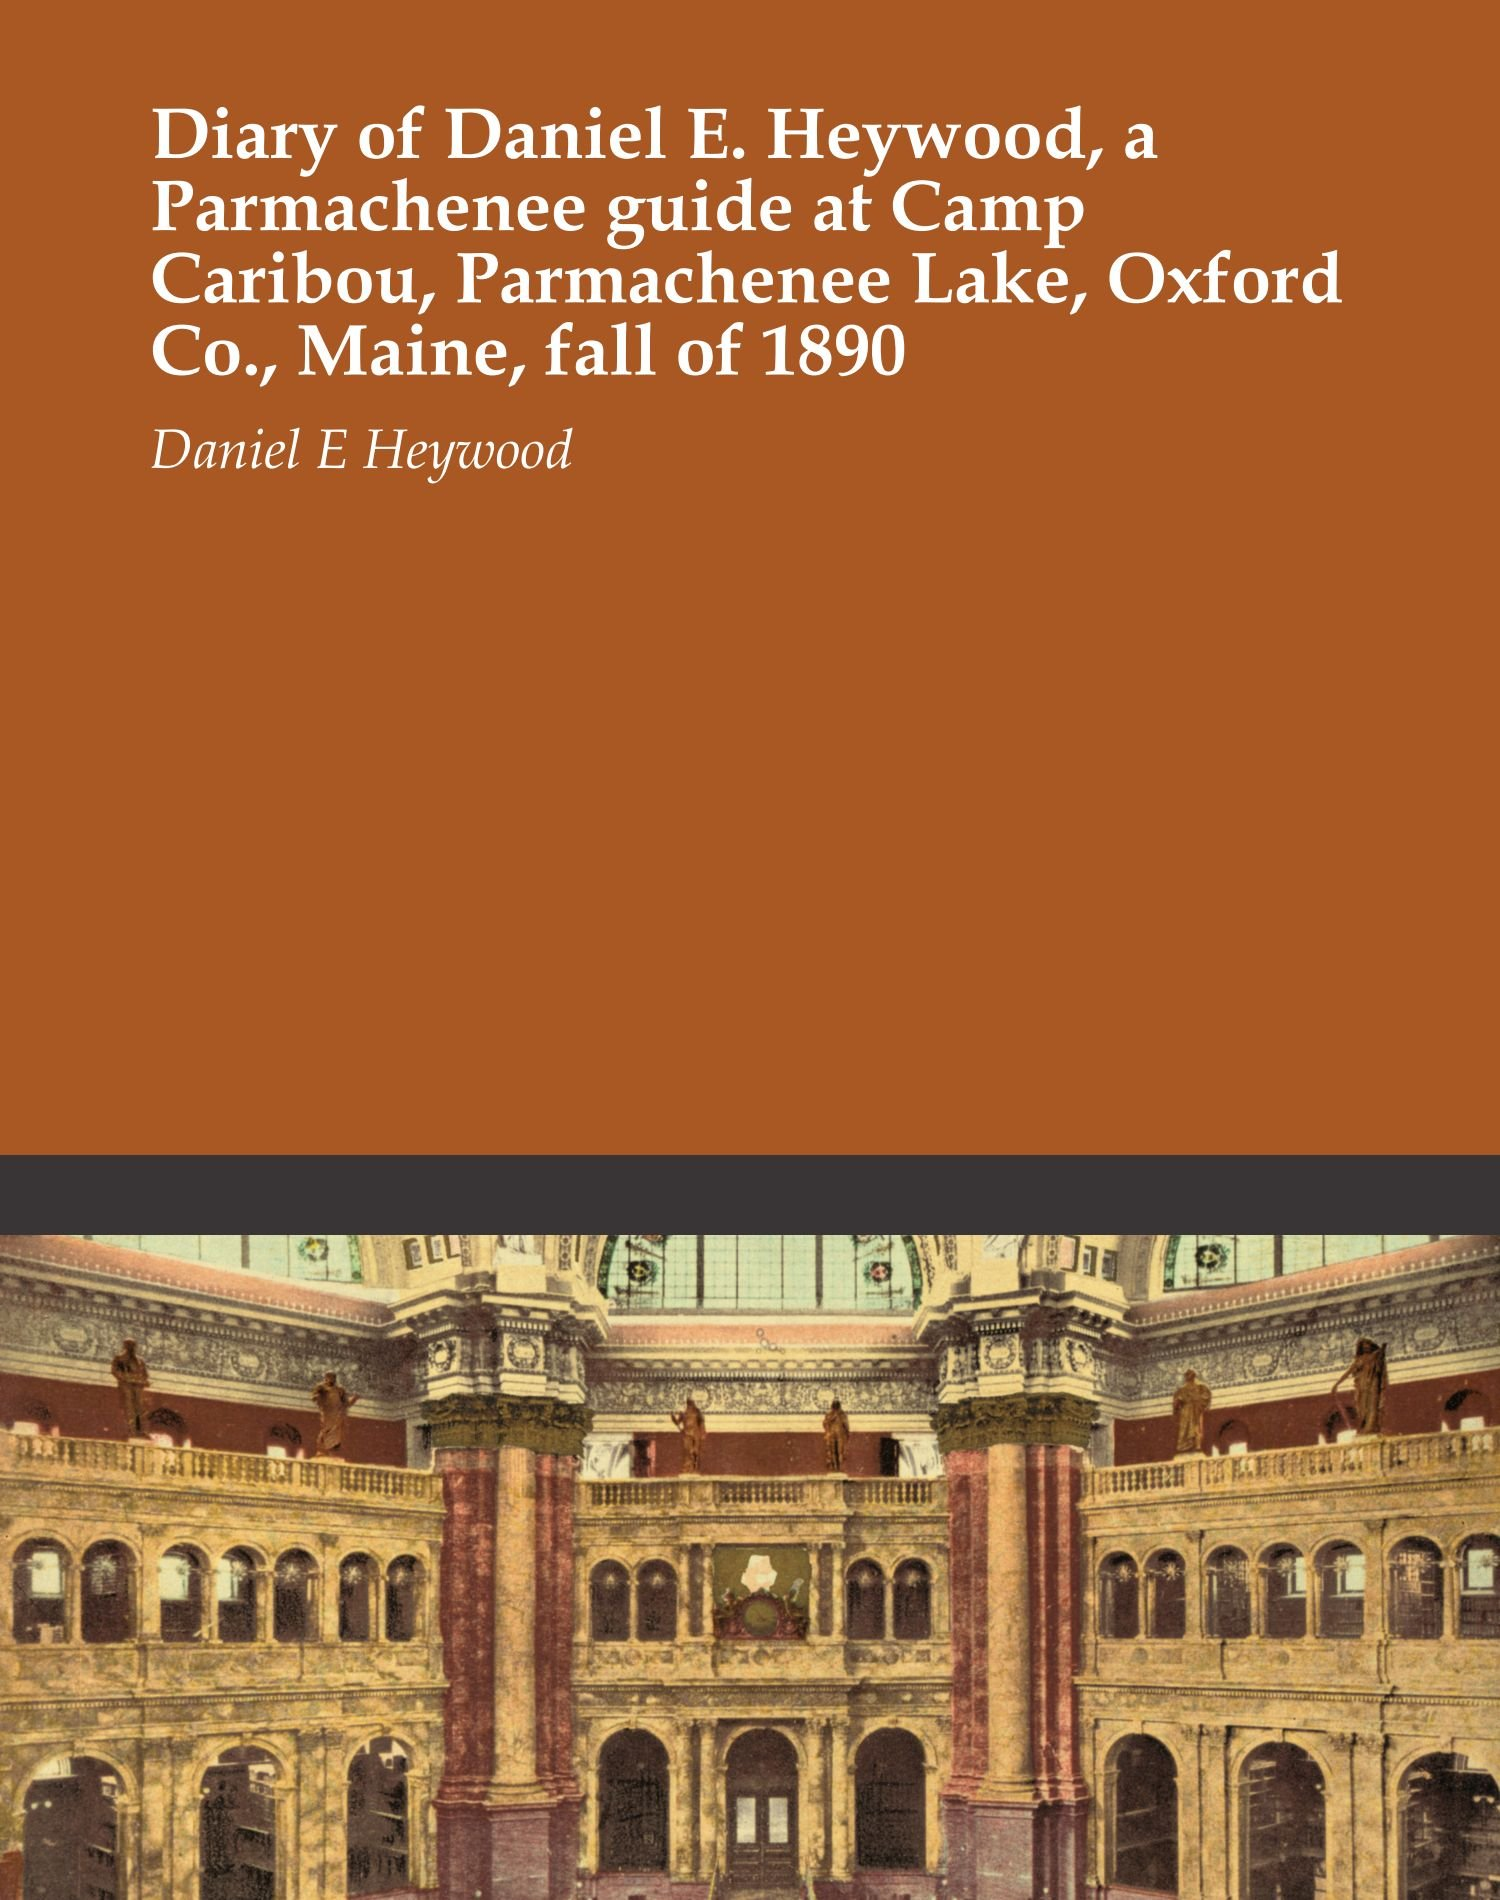 Download Diary of Daniel E. Heywood, a Parmachenee guide at Camp Caribou, Parmachenee Lake, Oxford Co., Maine, fall of 1890 pdf